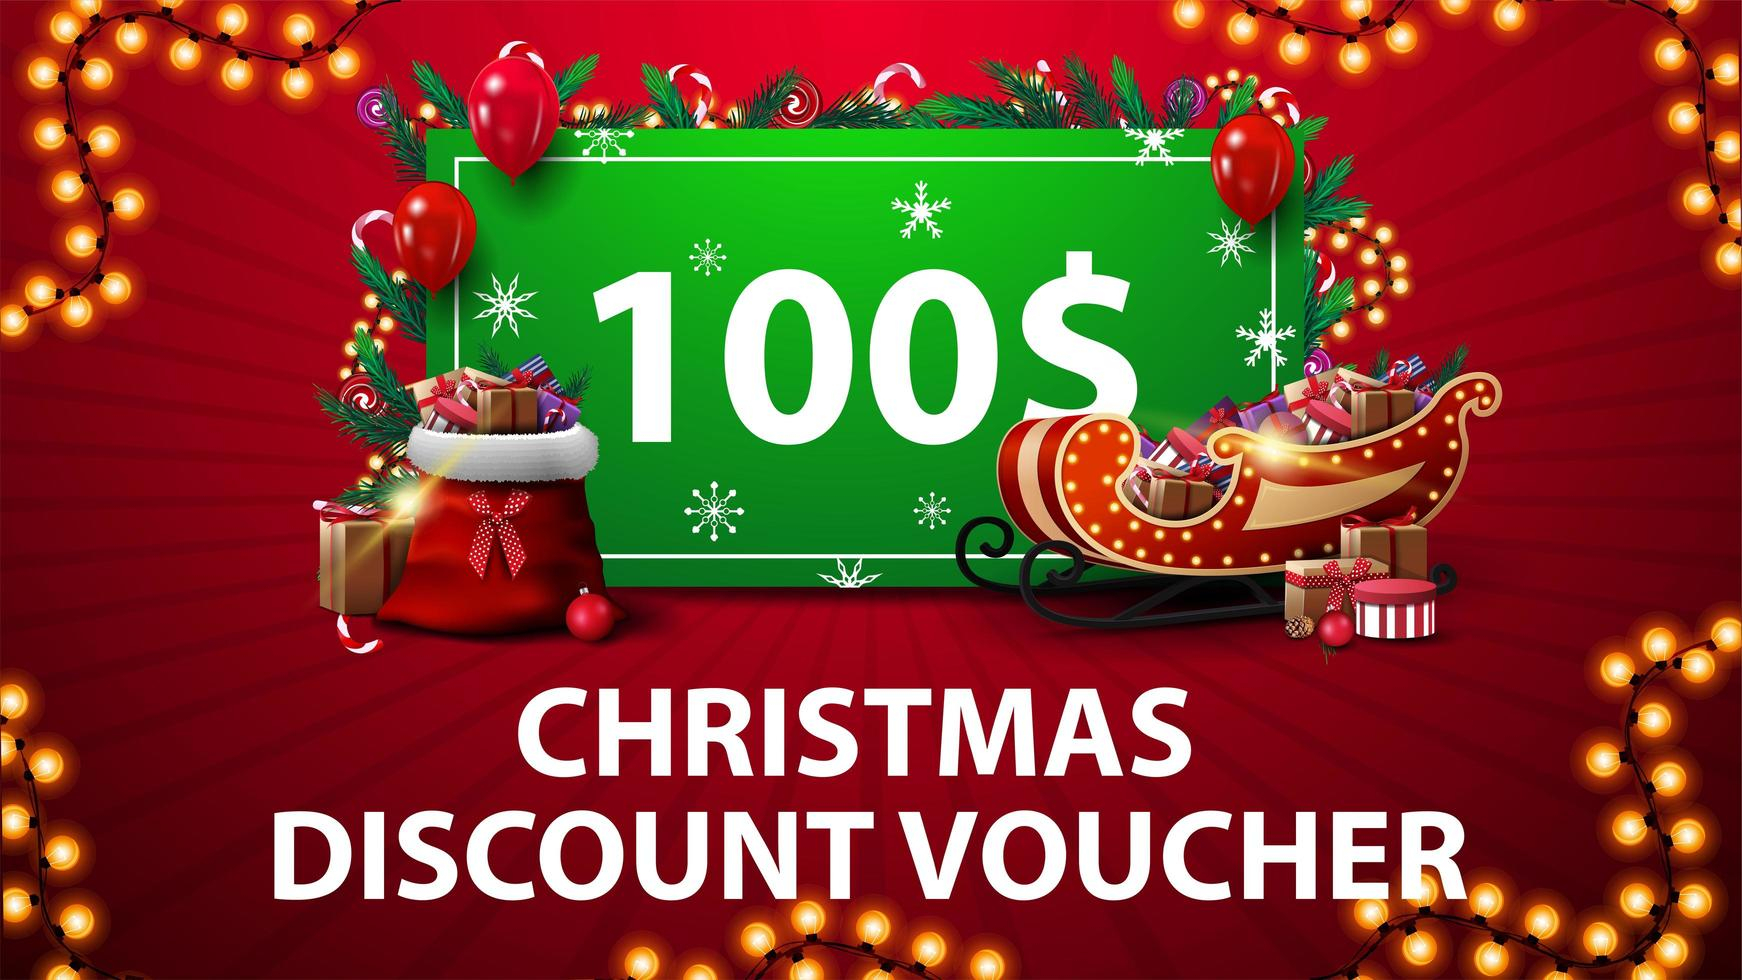 Christmas Discount Voucher with Santa Sleigh and bag with presents, garland frame and green offer decorated with presents vector